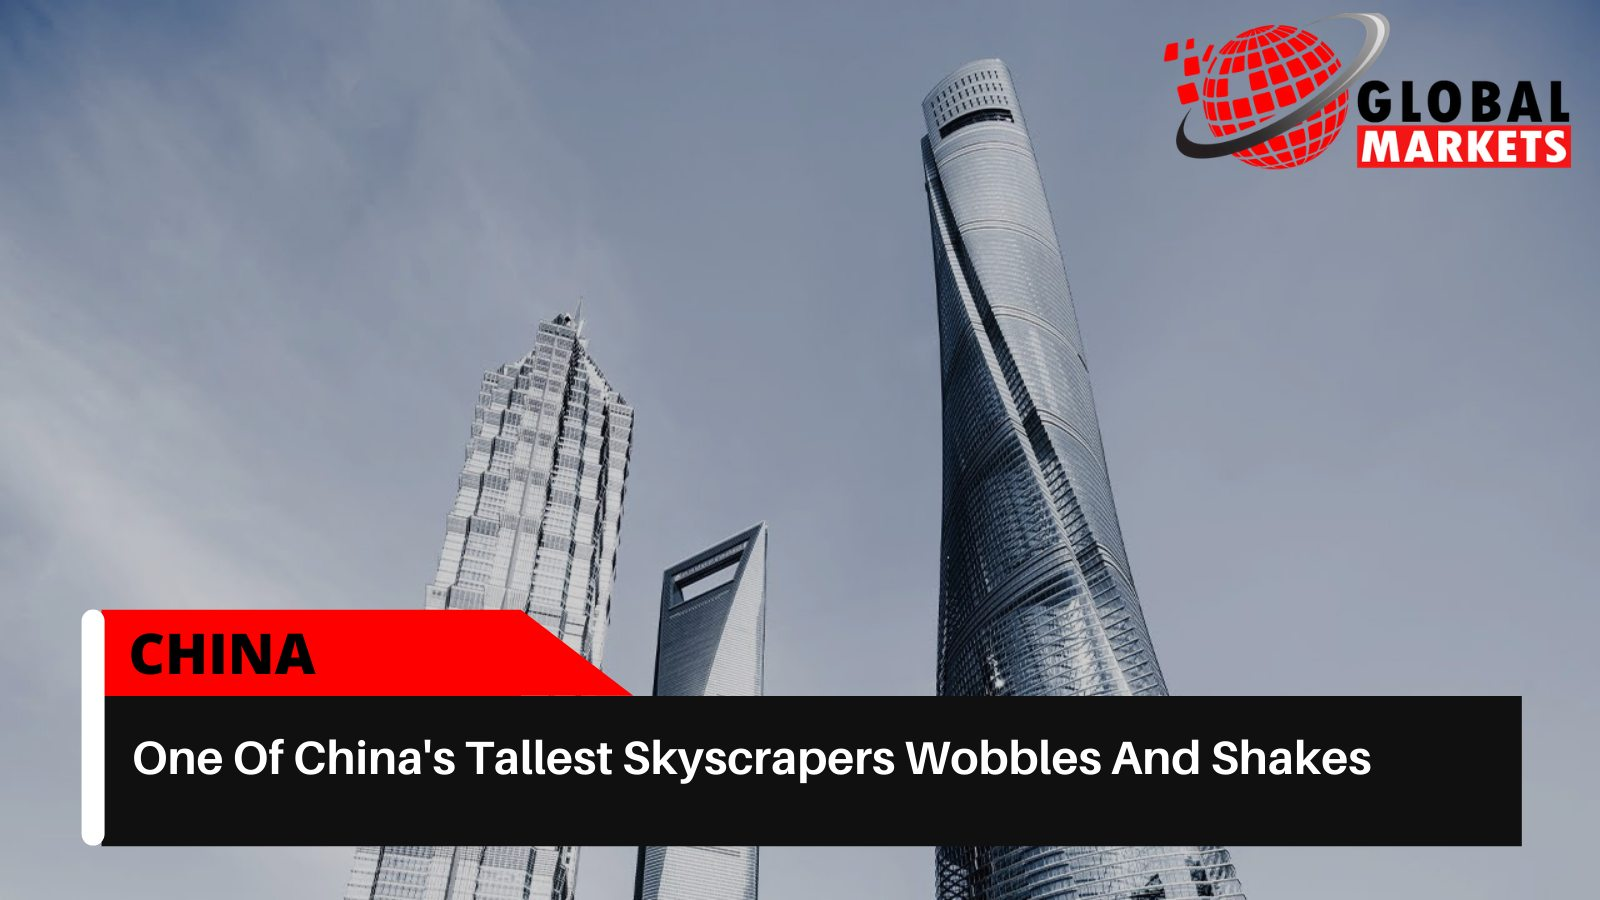 China's Tallest Skyscrapers Wobbles And Shakes